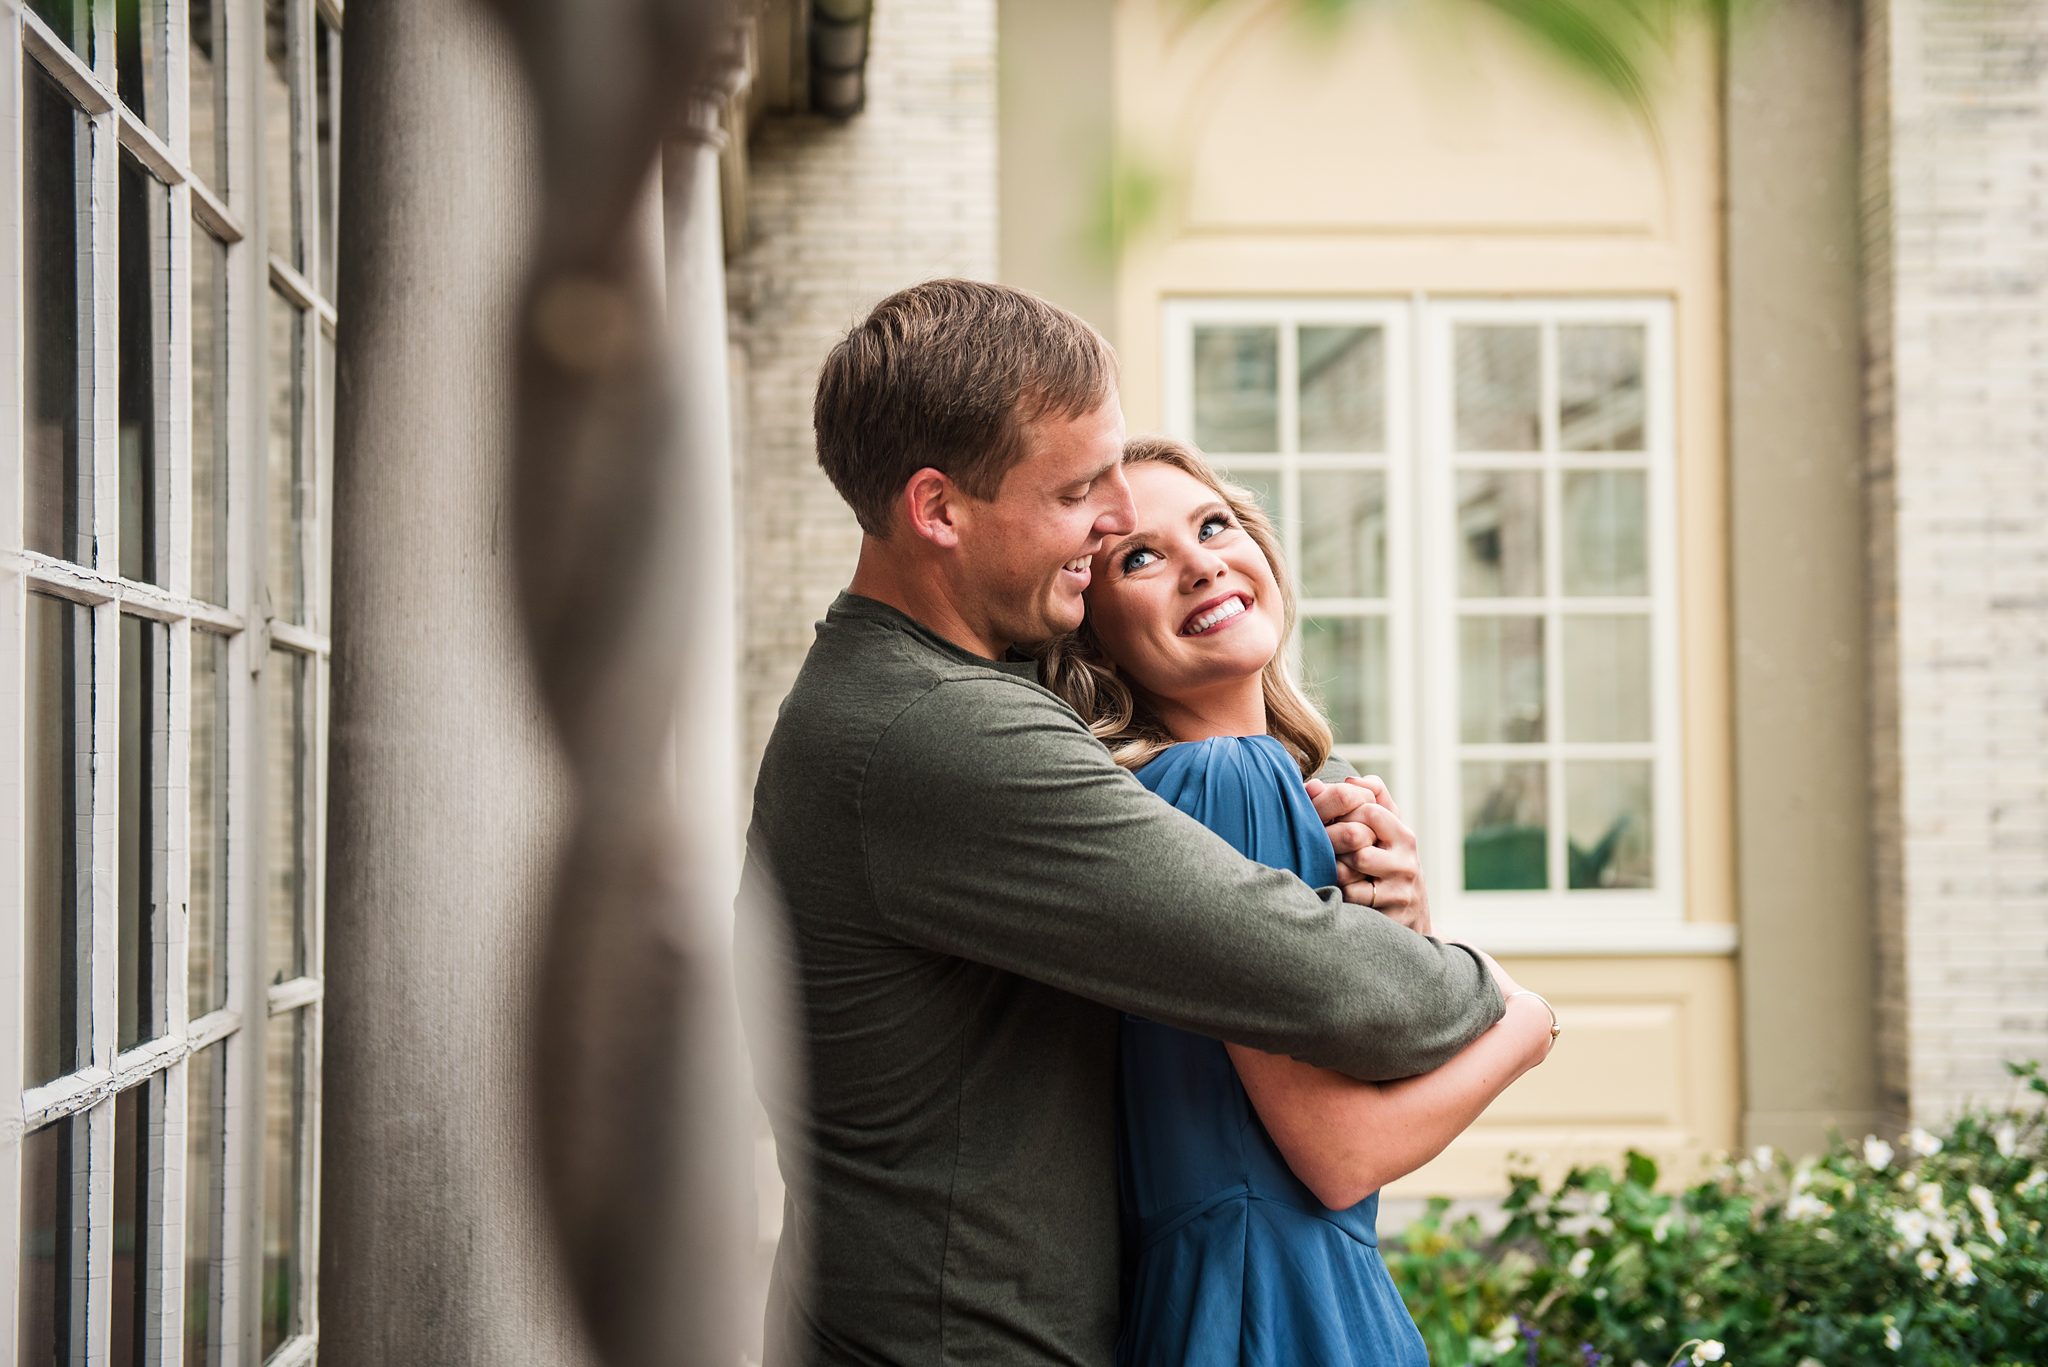 George_Eastman_House_Rochester_Yacht_Club_Rochester_Engagement_Session_JILL_STUDIO_Rochester_NY_Photographer_DSC_8075.jpg